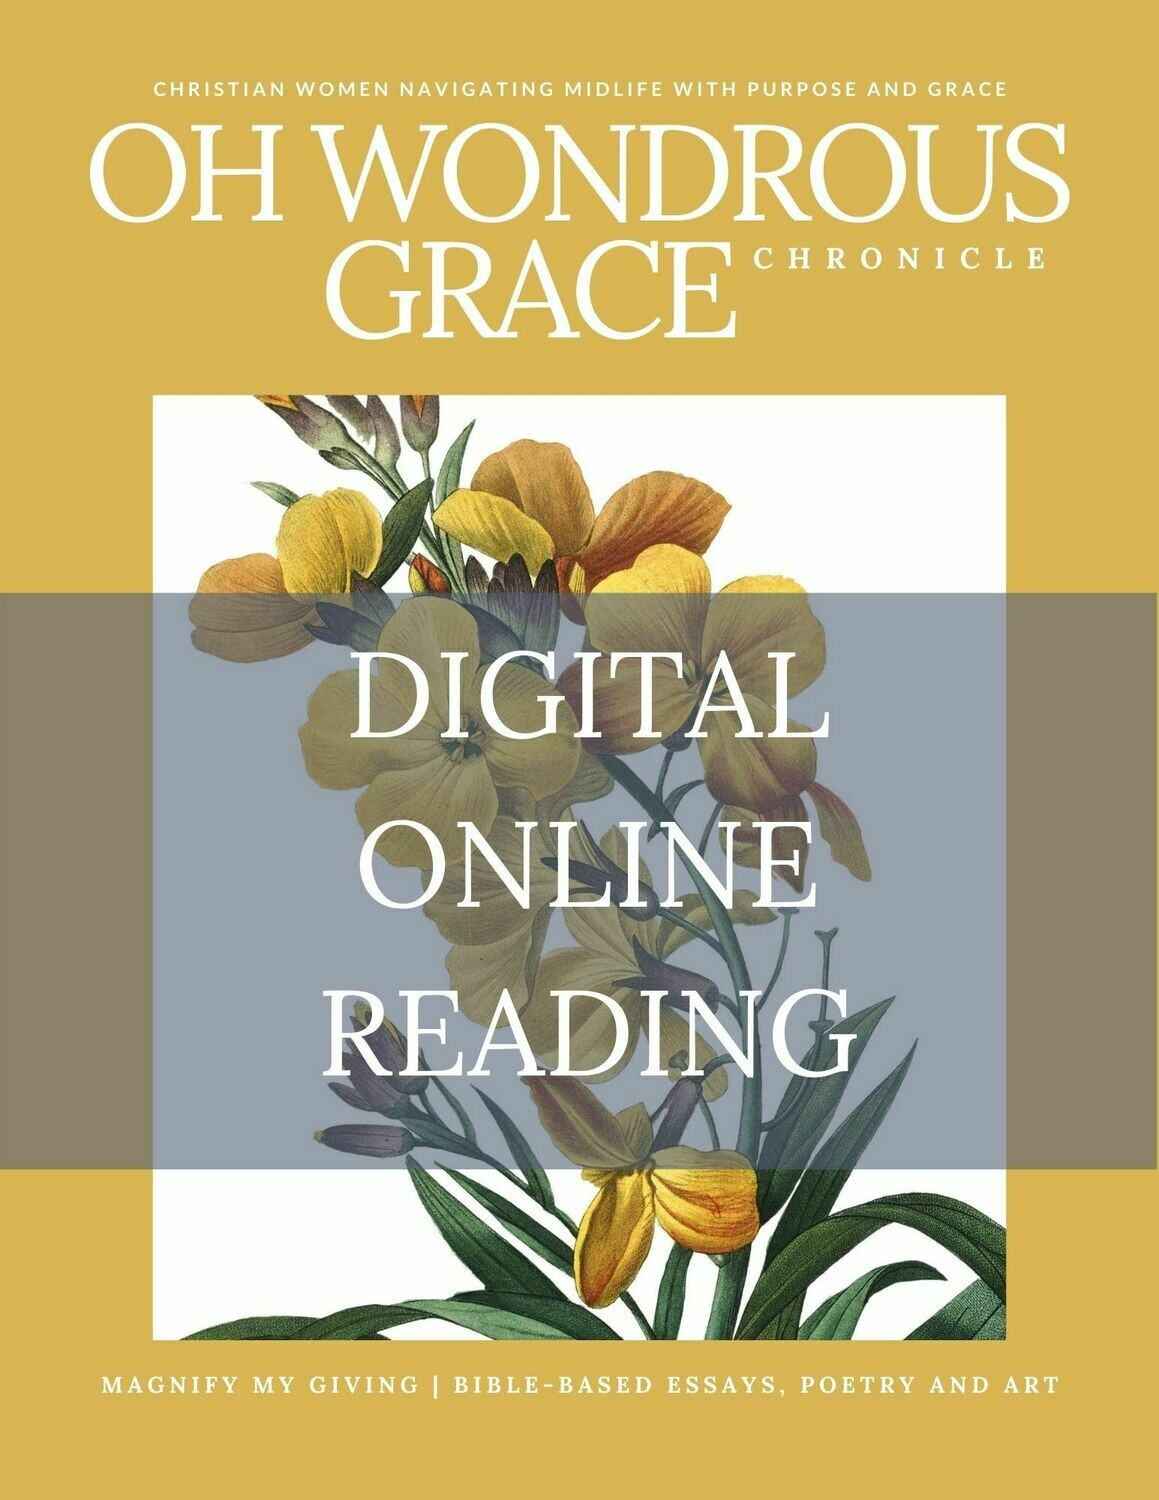 ONLINE DIGITAL READING- Magnify My Giving- Bible-Based Essays, Poetry and Art